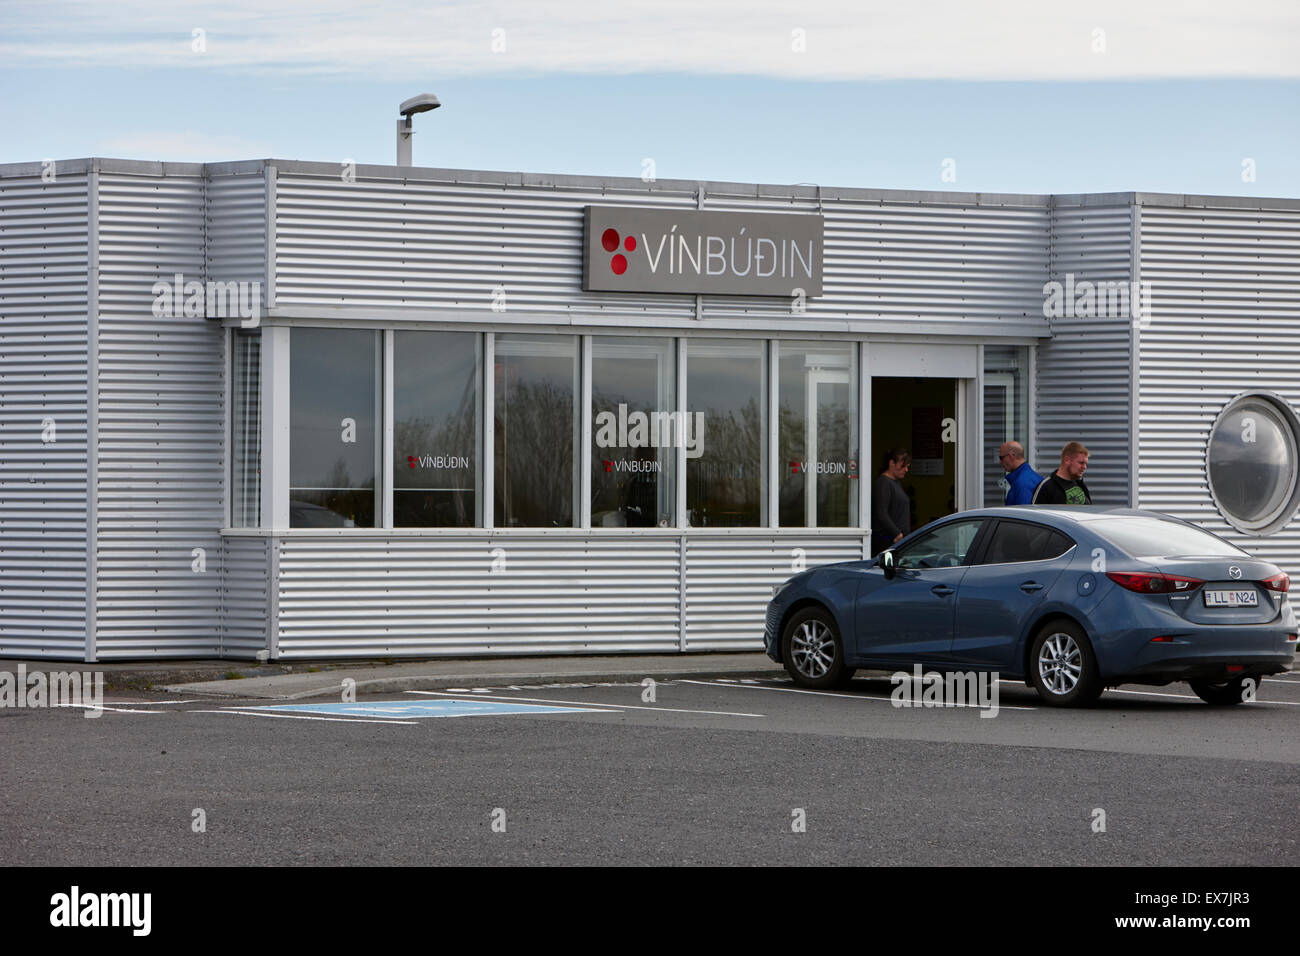 vinbudin licensed official government liquor alcohol stores in iceland - Stock Image